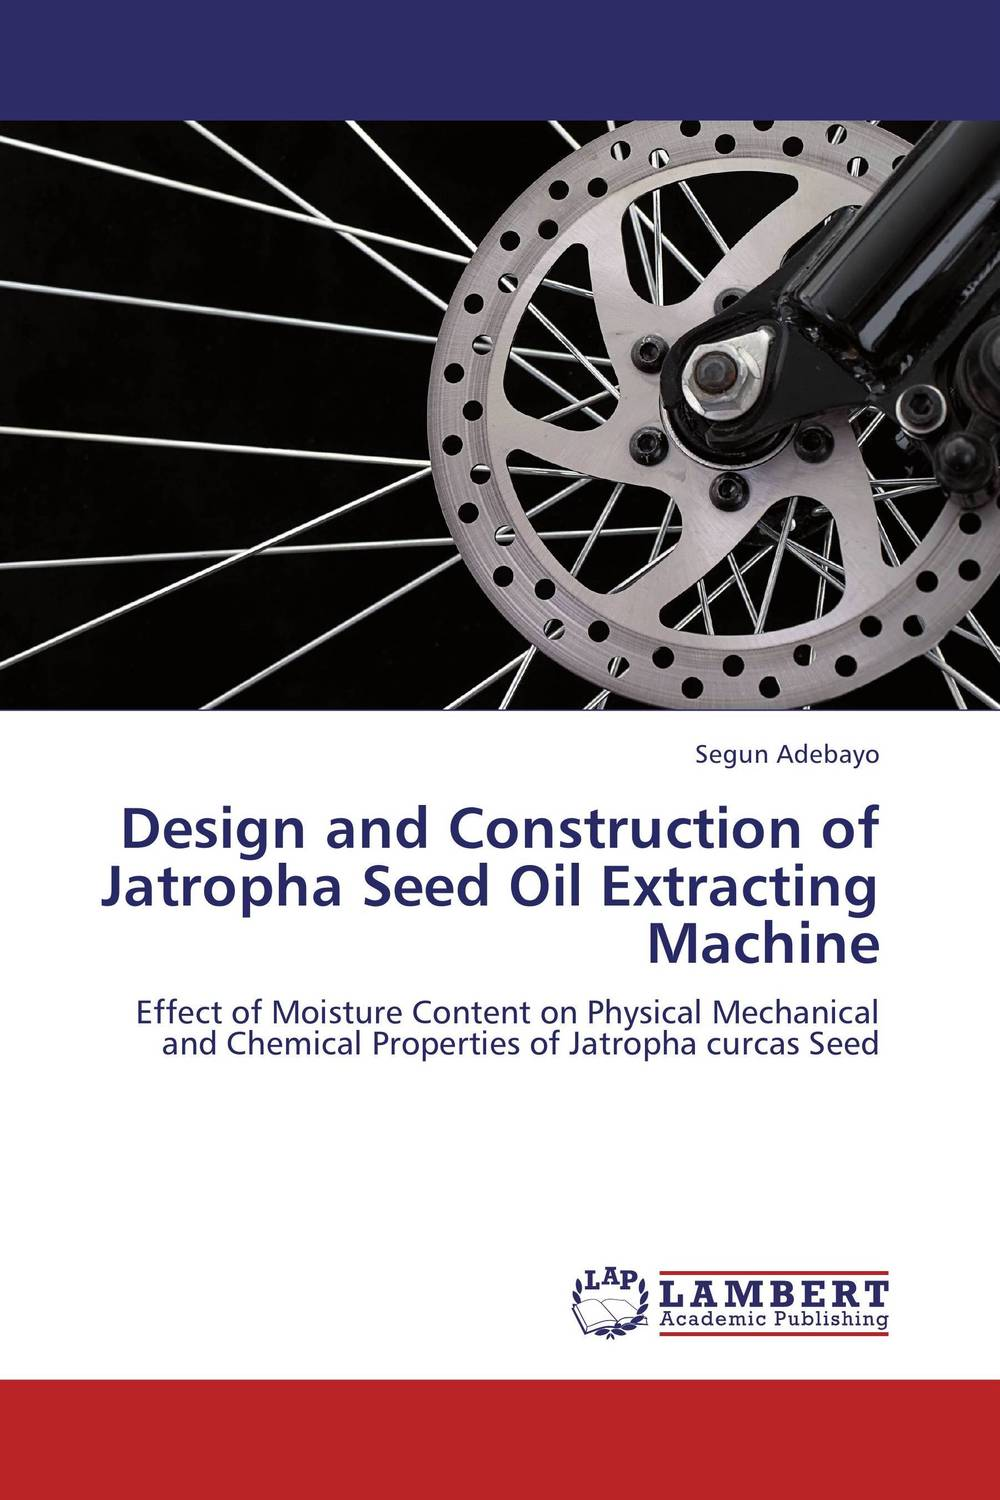 Design and Construction of Jatropha Seed Oil Extracting Machine design and construction of jatropha seed oil extracting machine